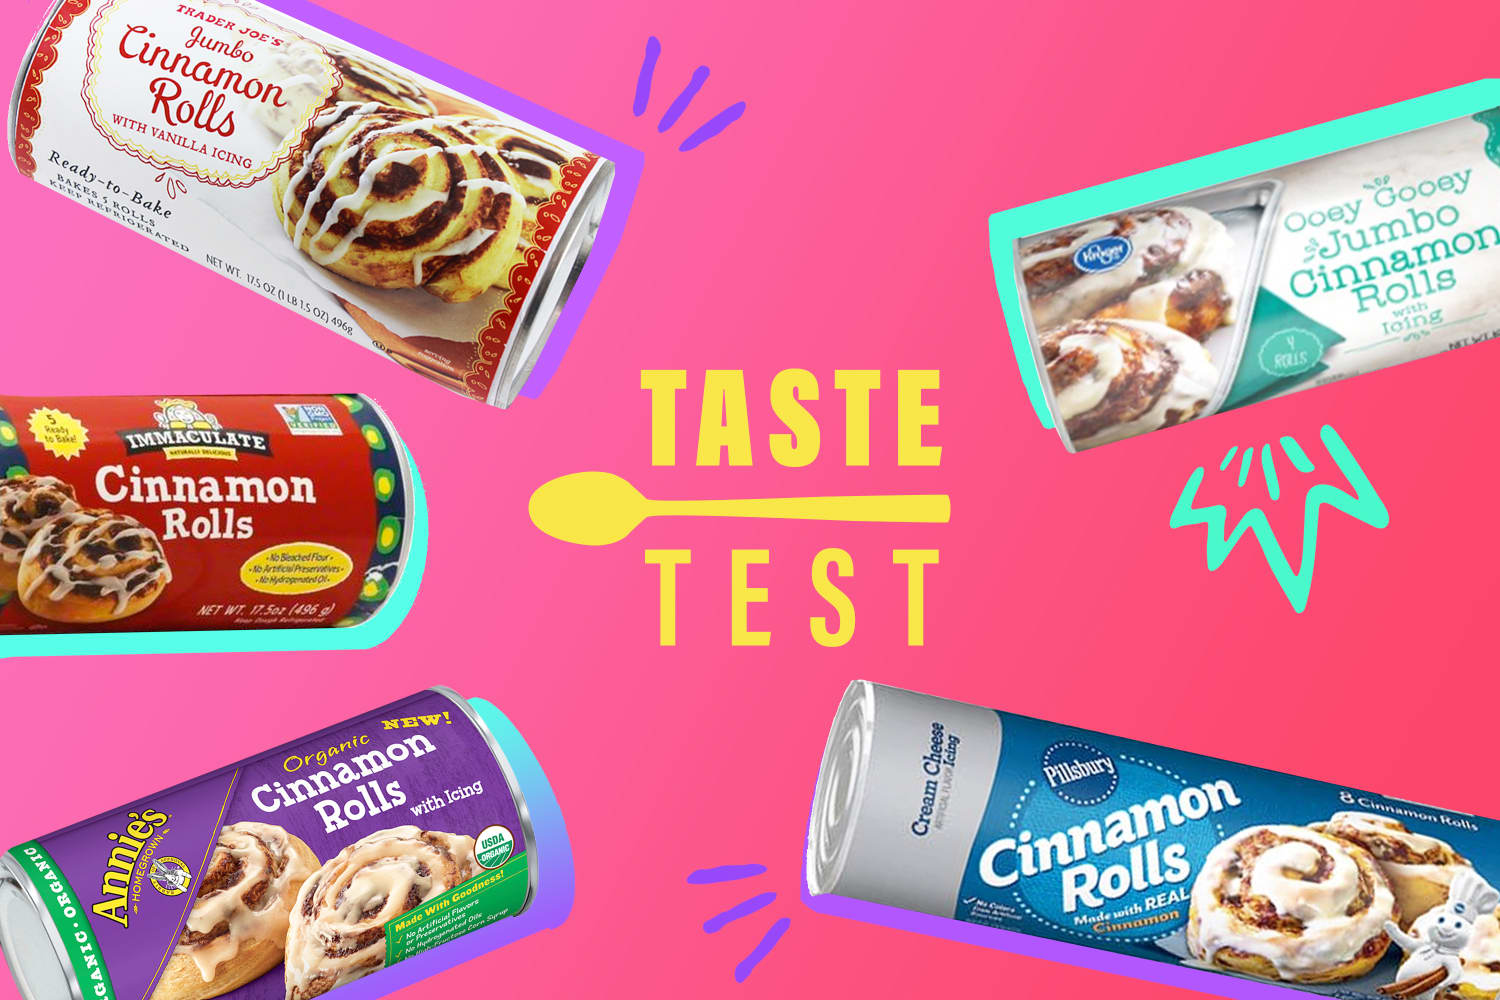 I Tried All the Canned Cinnamon Rolls I Could Find. Here Are My Favorites.